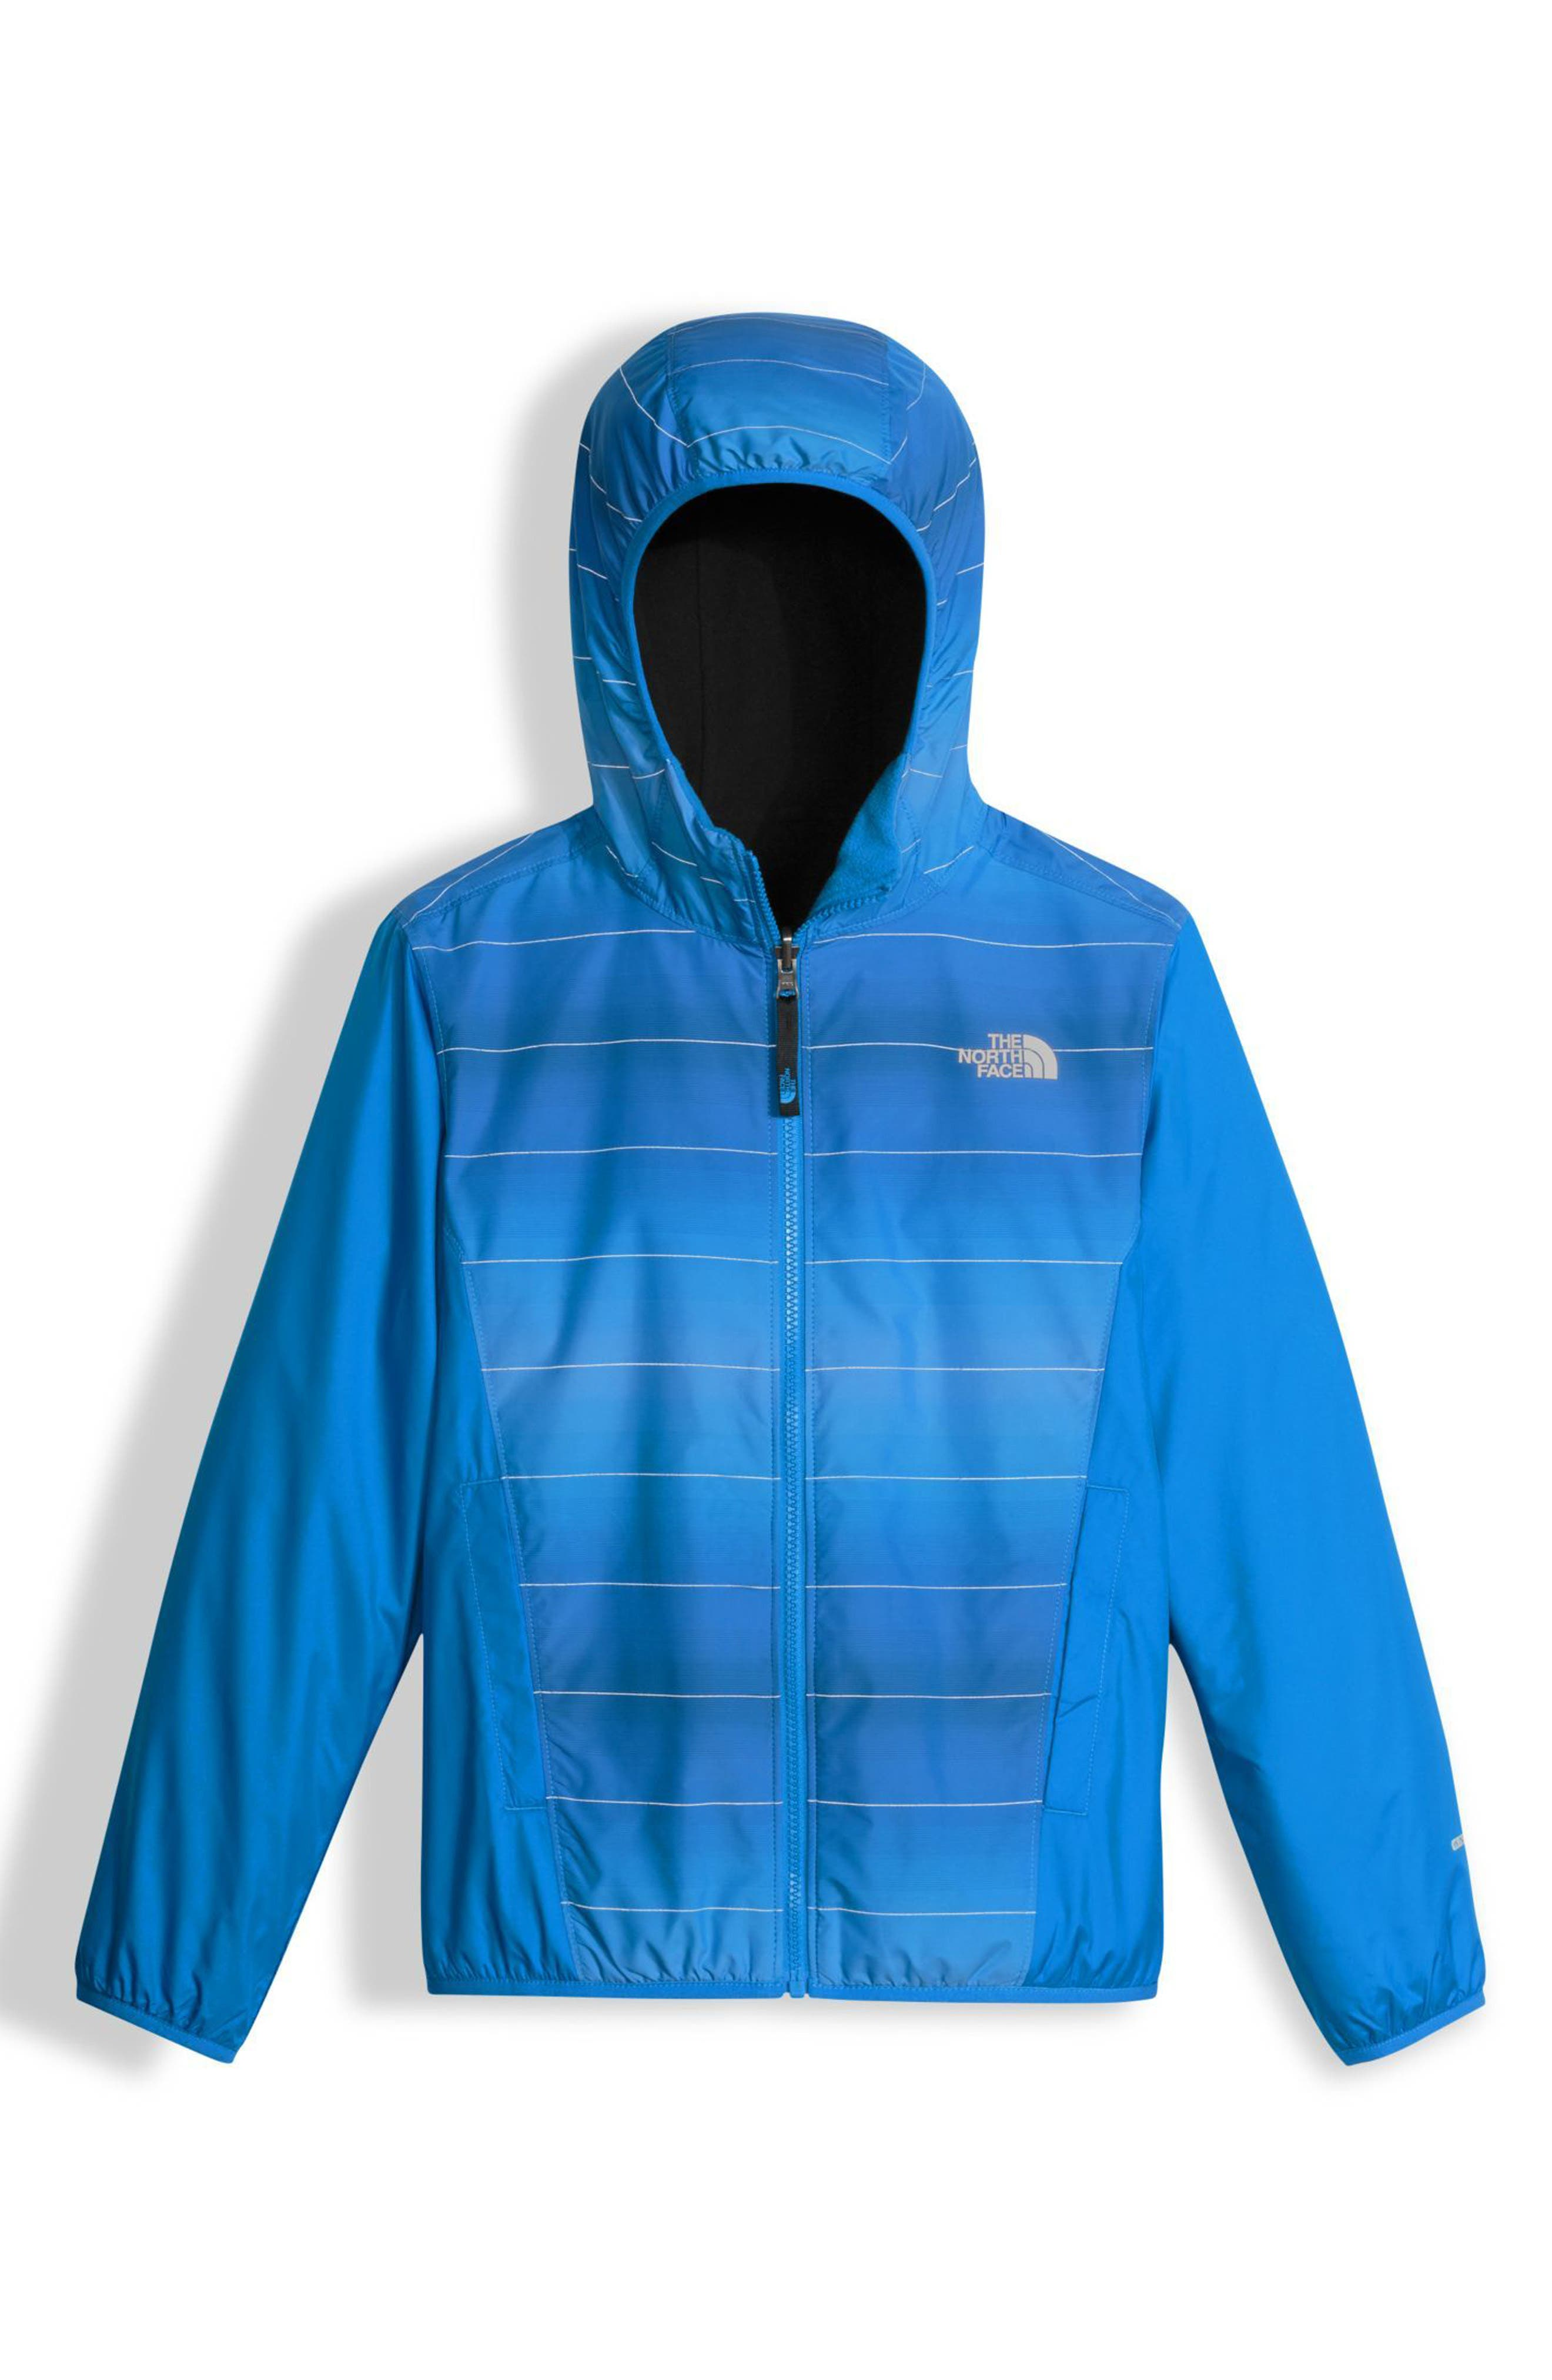 THE NORTH FACE 'Breezeway' Reversible Wind Jacket